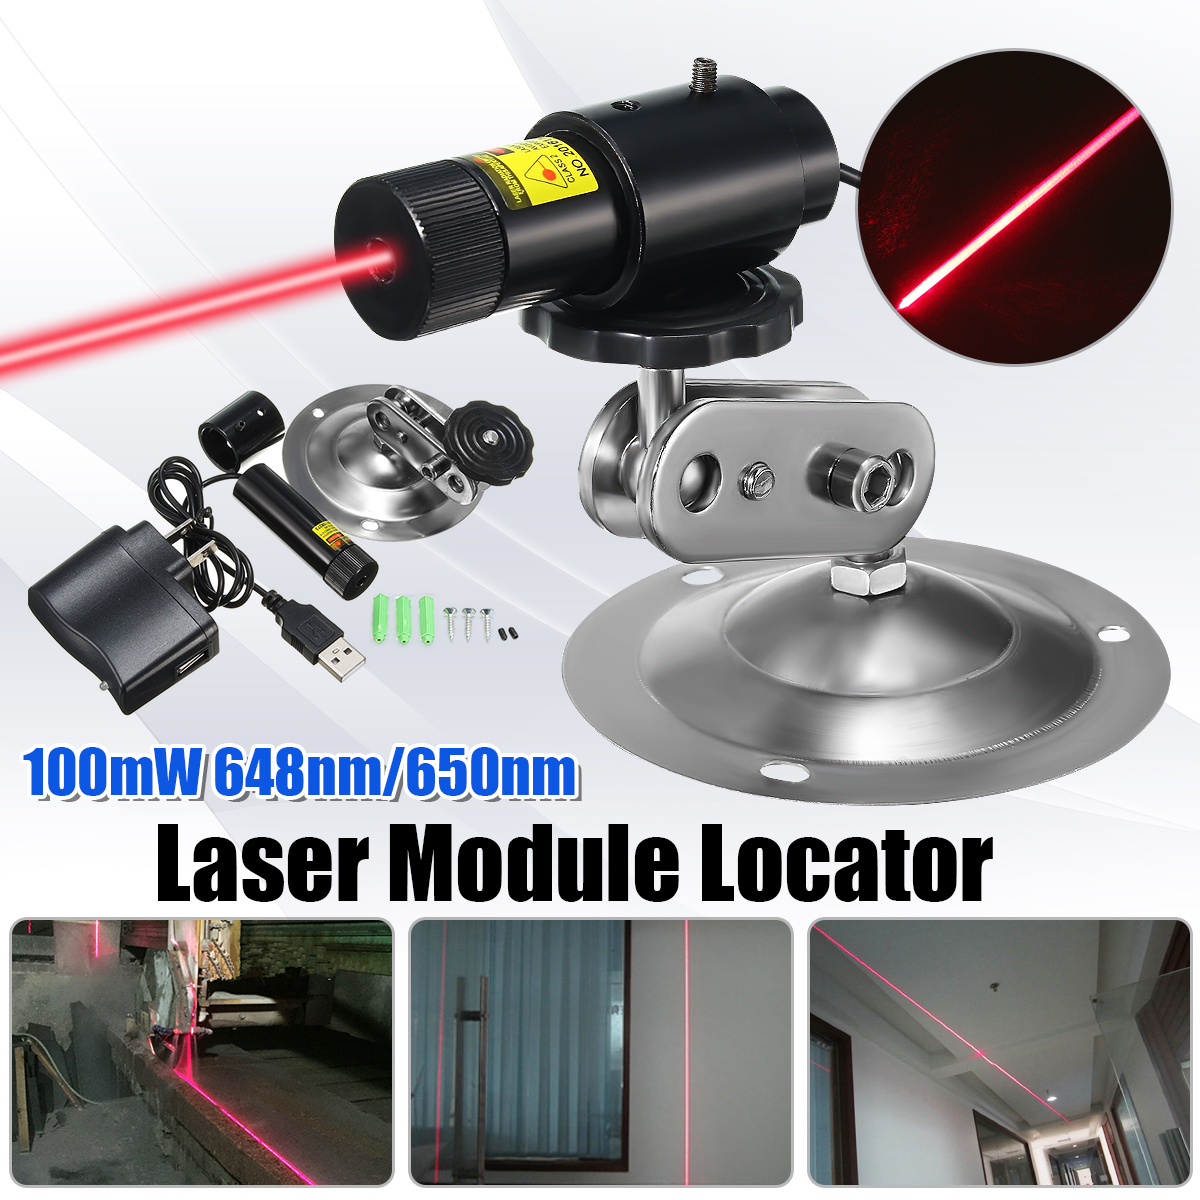 Focusable 648nm 650nm 100mW Red Laser Line Module Locator Cutter For Wood Fabric Stone Cutting With Adapter And Mount